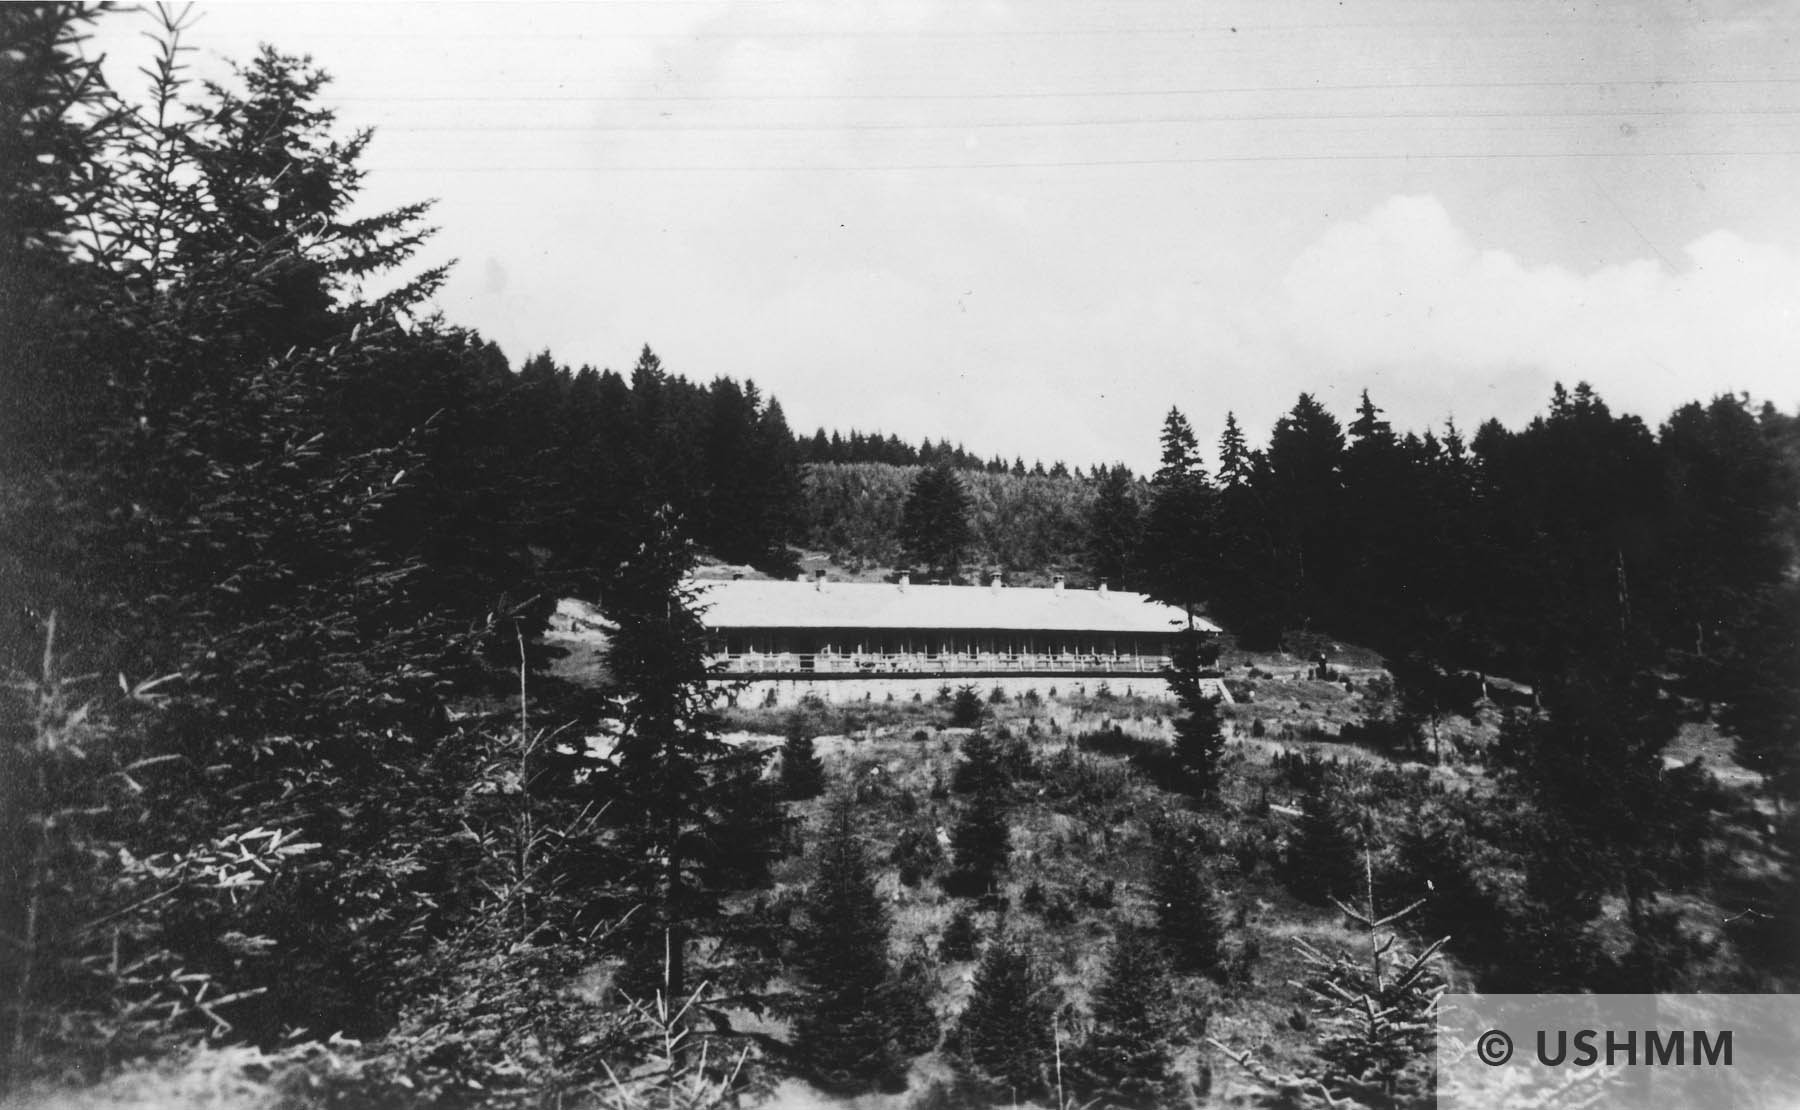 View of Solahütte, the SS retreat outside of Auschwitz. USHMM 34750